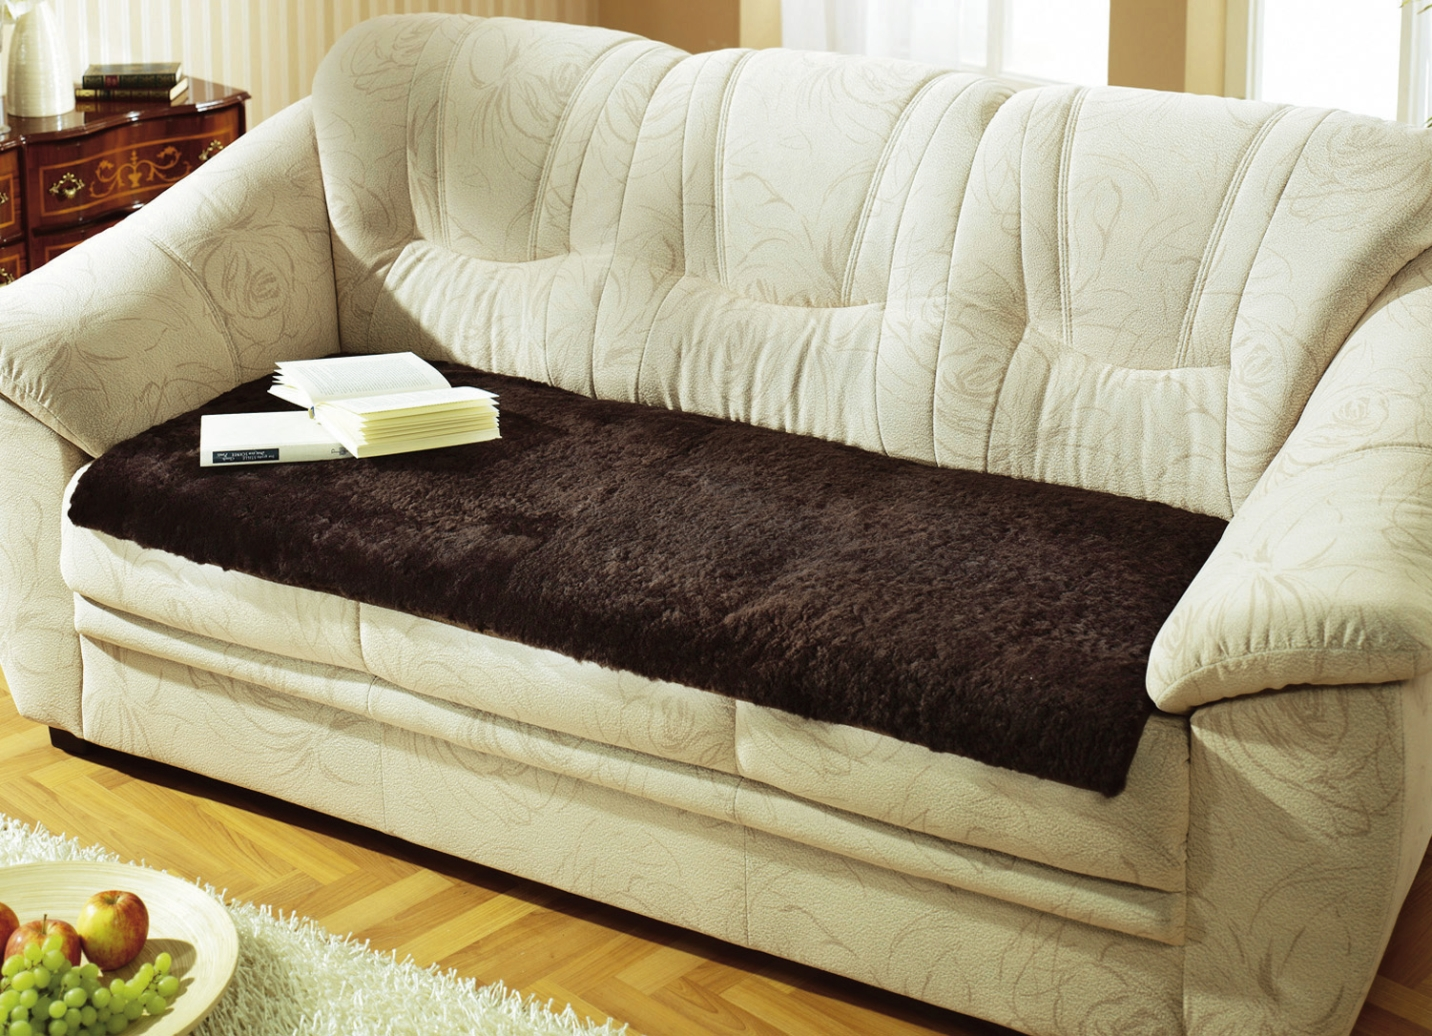 Couchauflage lammfell sessel sofa berw rfe bader for Couch auflage